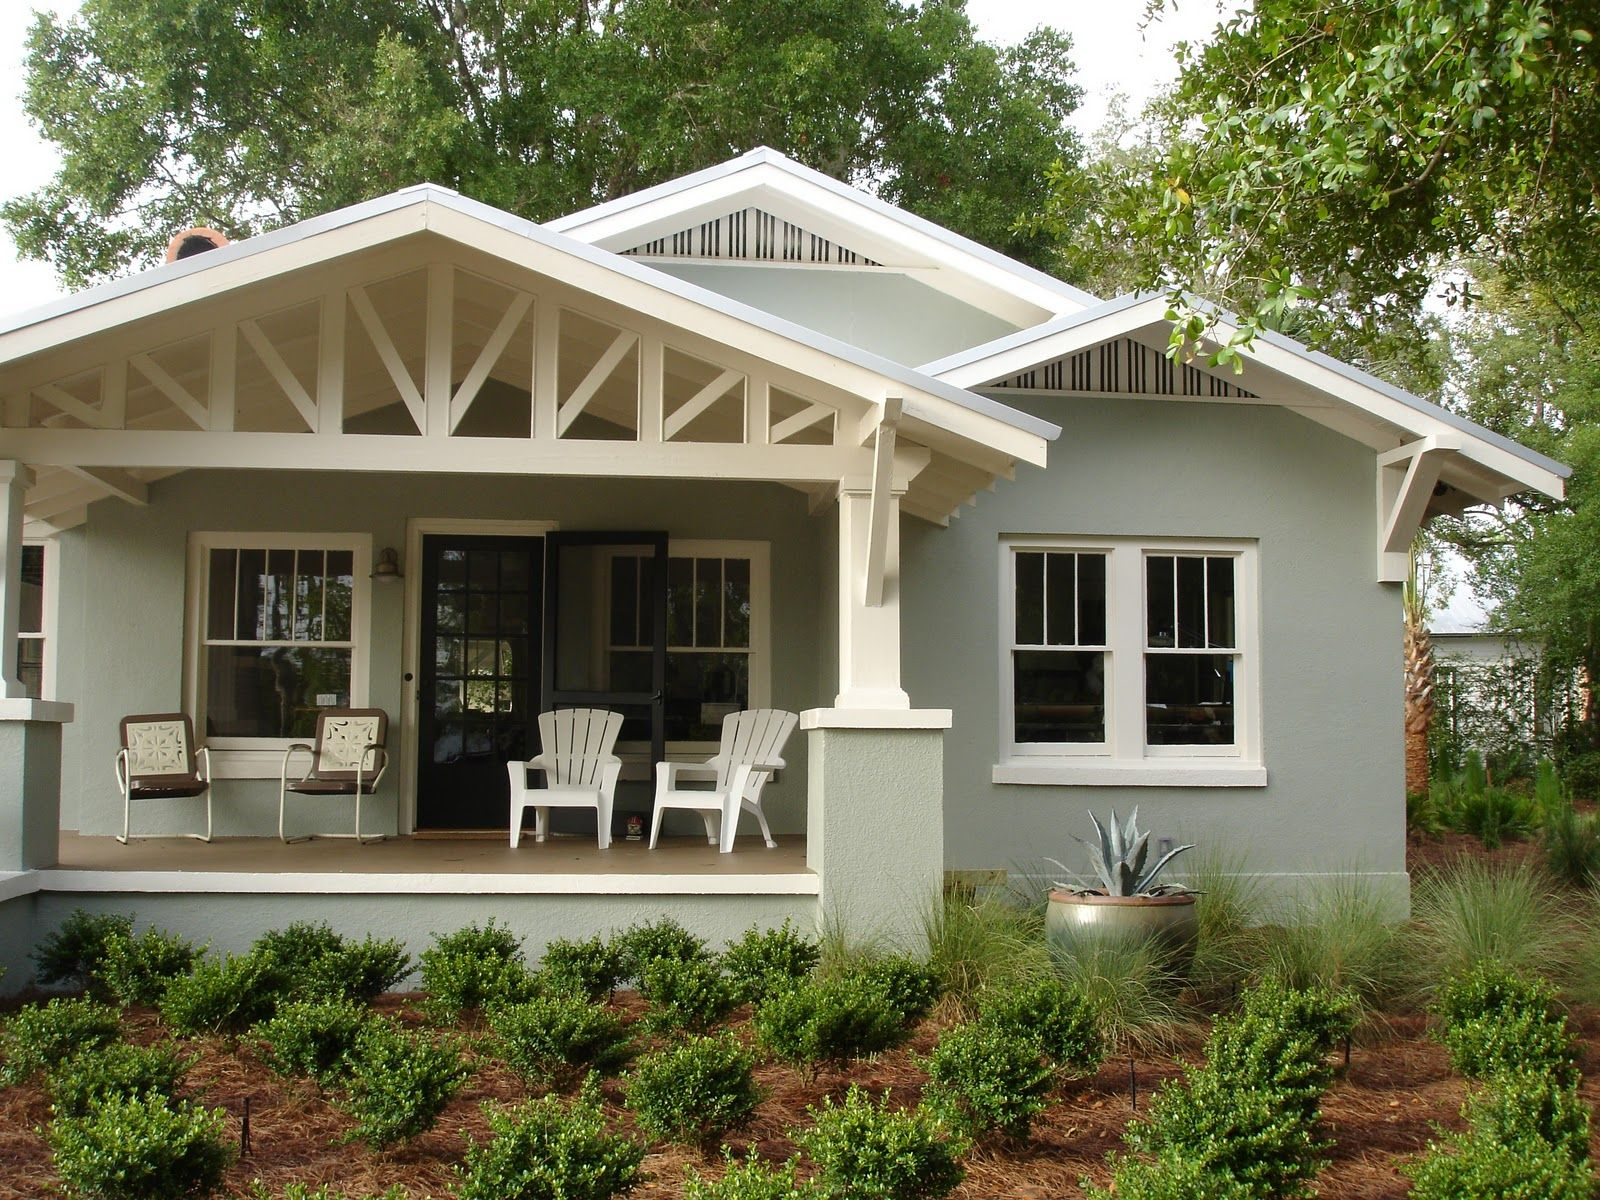 Cottage style homes the advantages and disadvantages of living in a bungalow